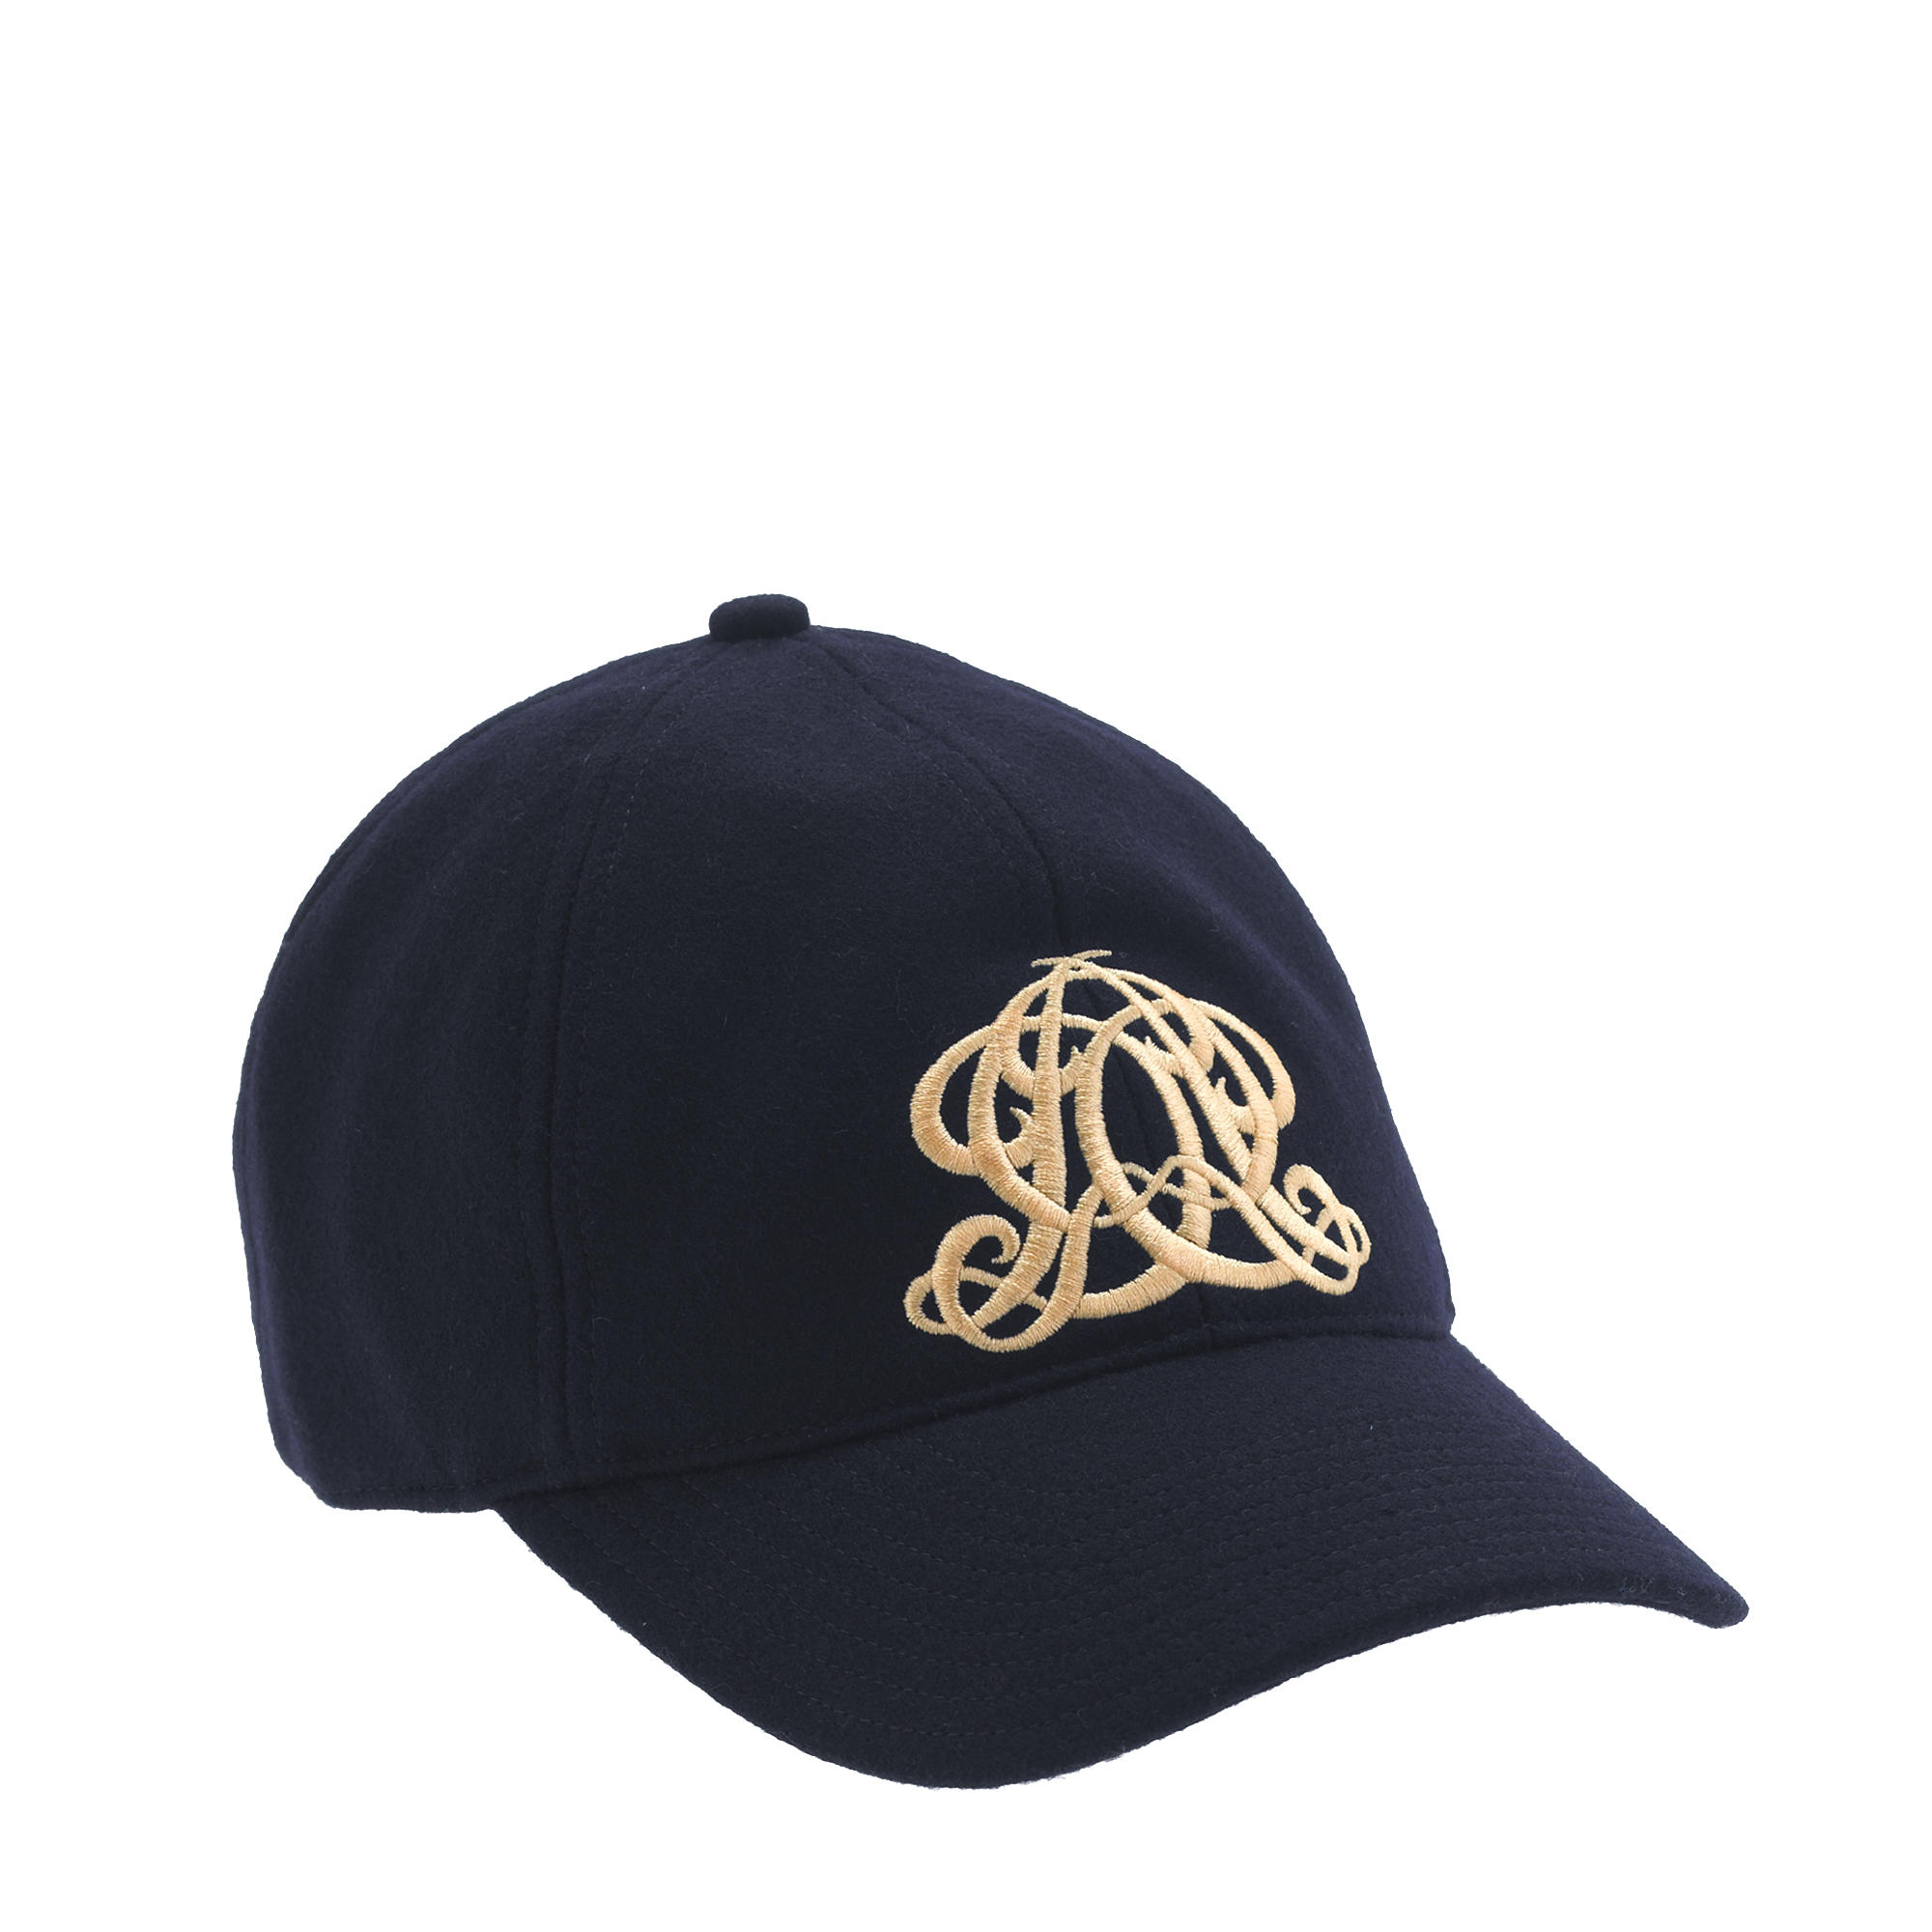 embroidered emblem baseball cap in navy j crew